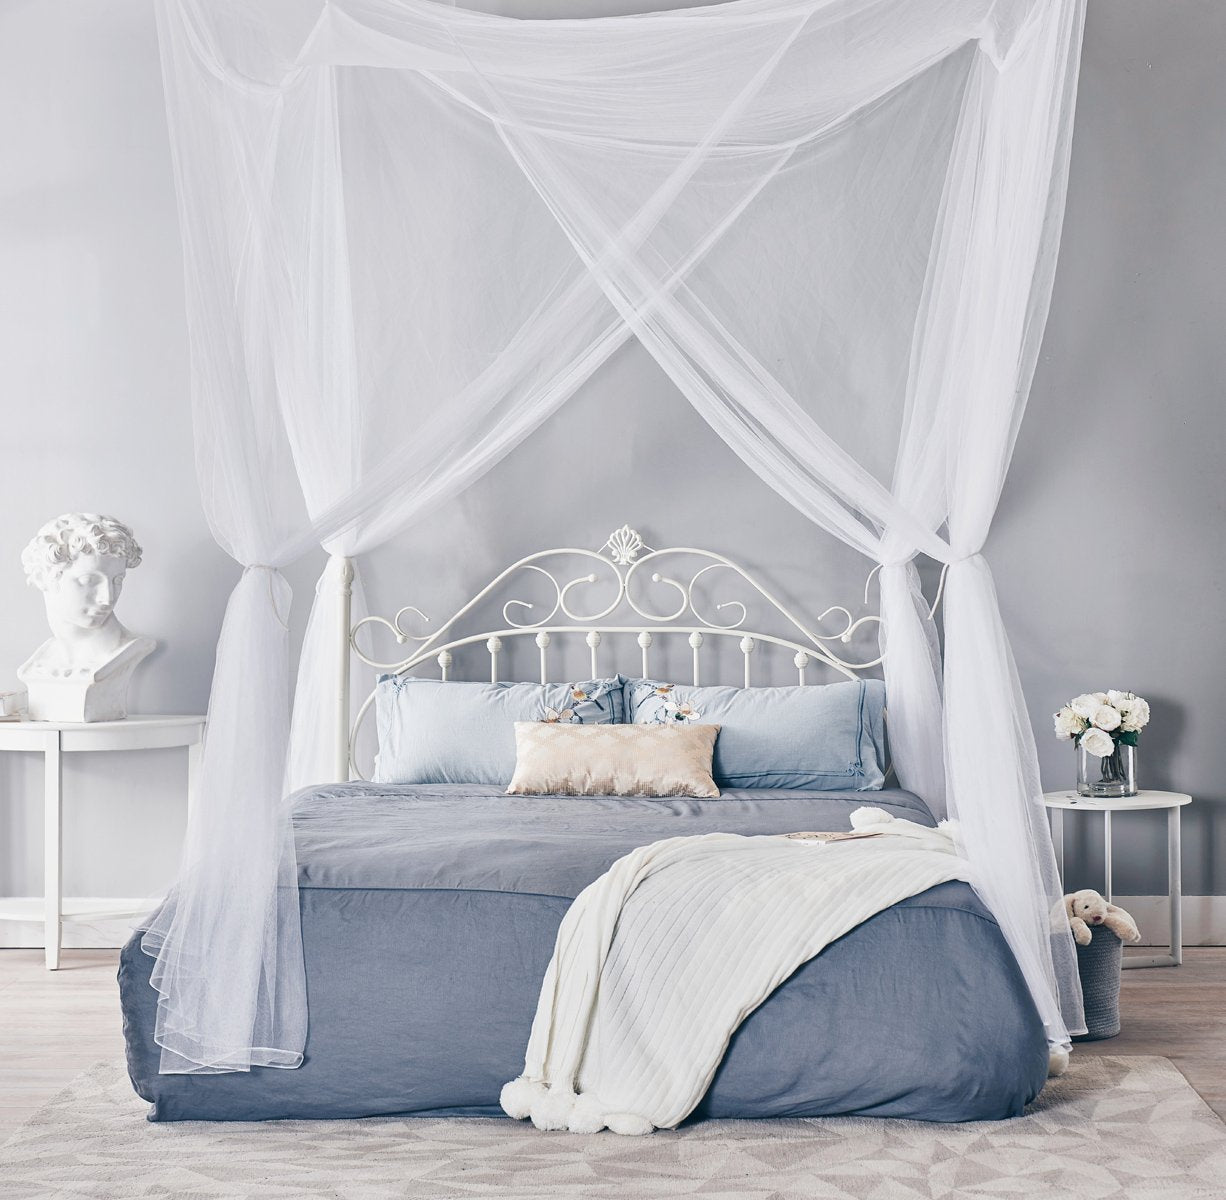 truedays four corner post bed princess canopy mosquito net full queen truedays. Black Bedroom Furniture Sets. Home Design Ideas